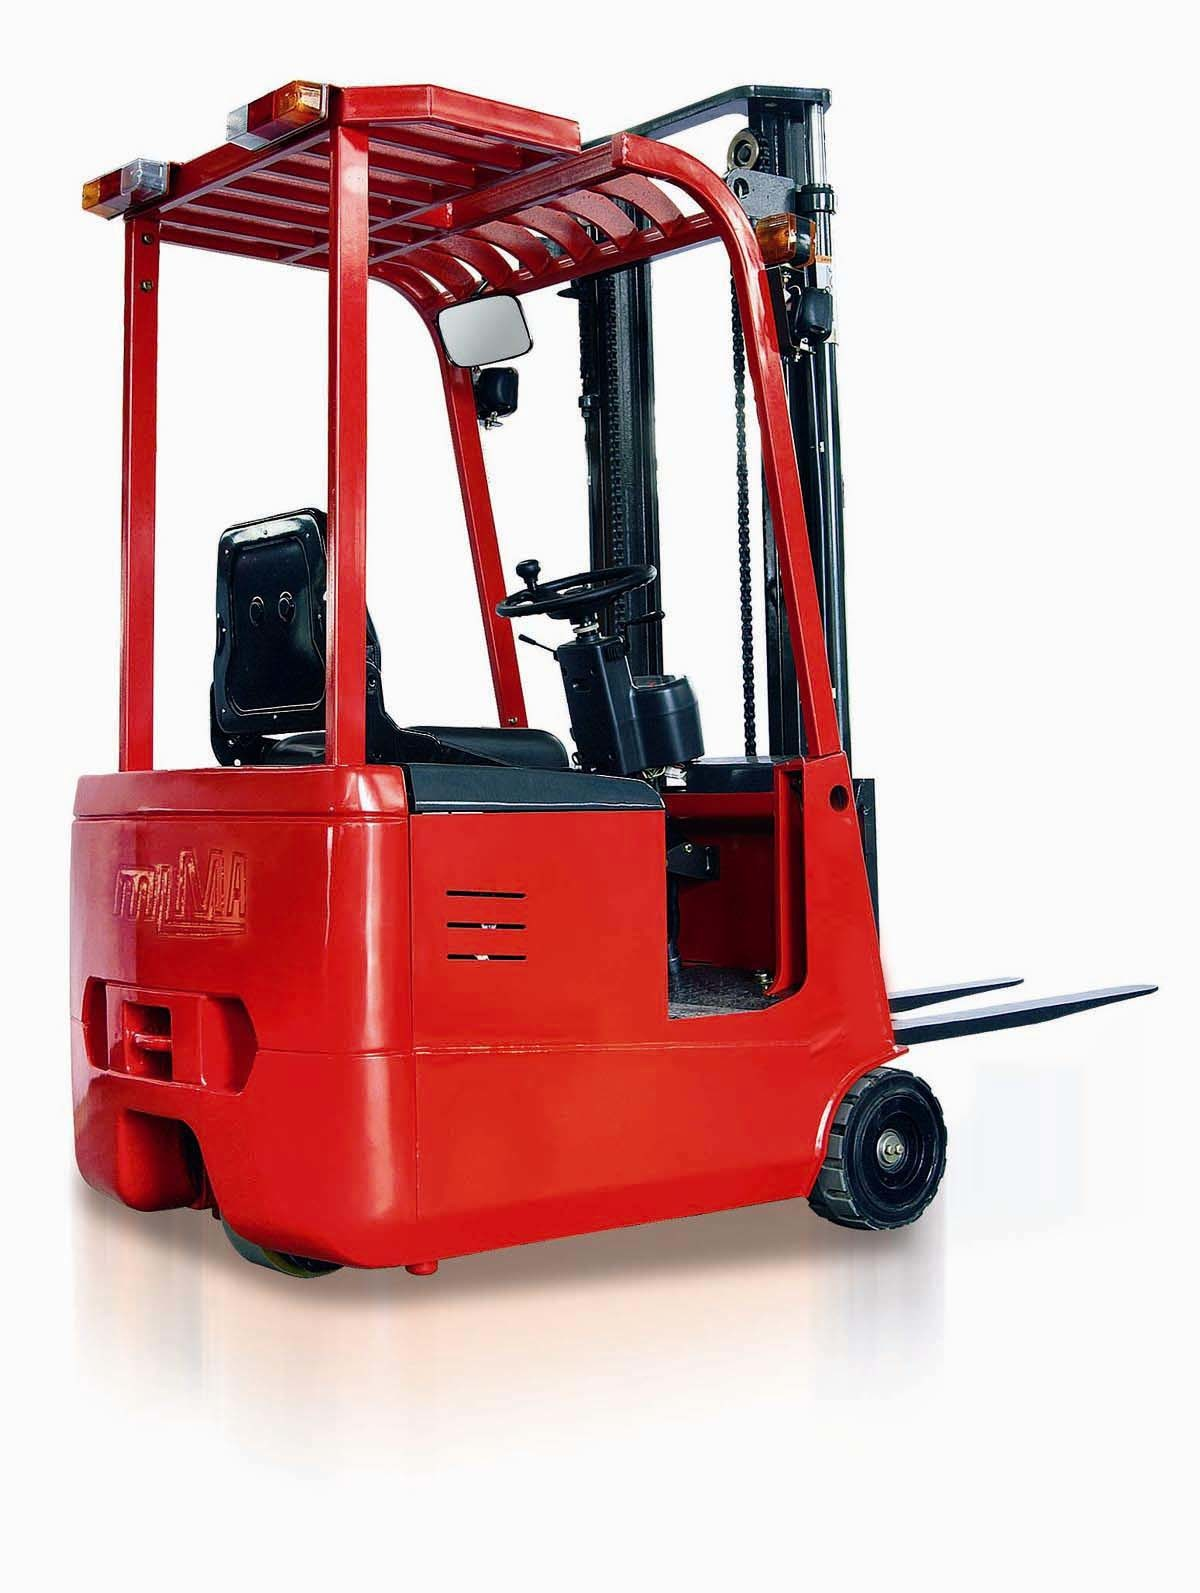 China mini electric forklift with small size and gig Motorized forklift